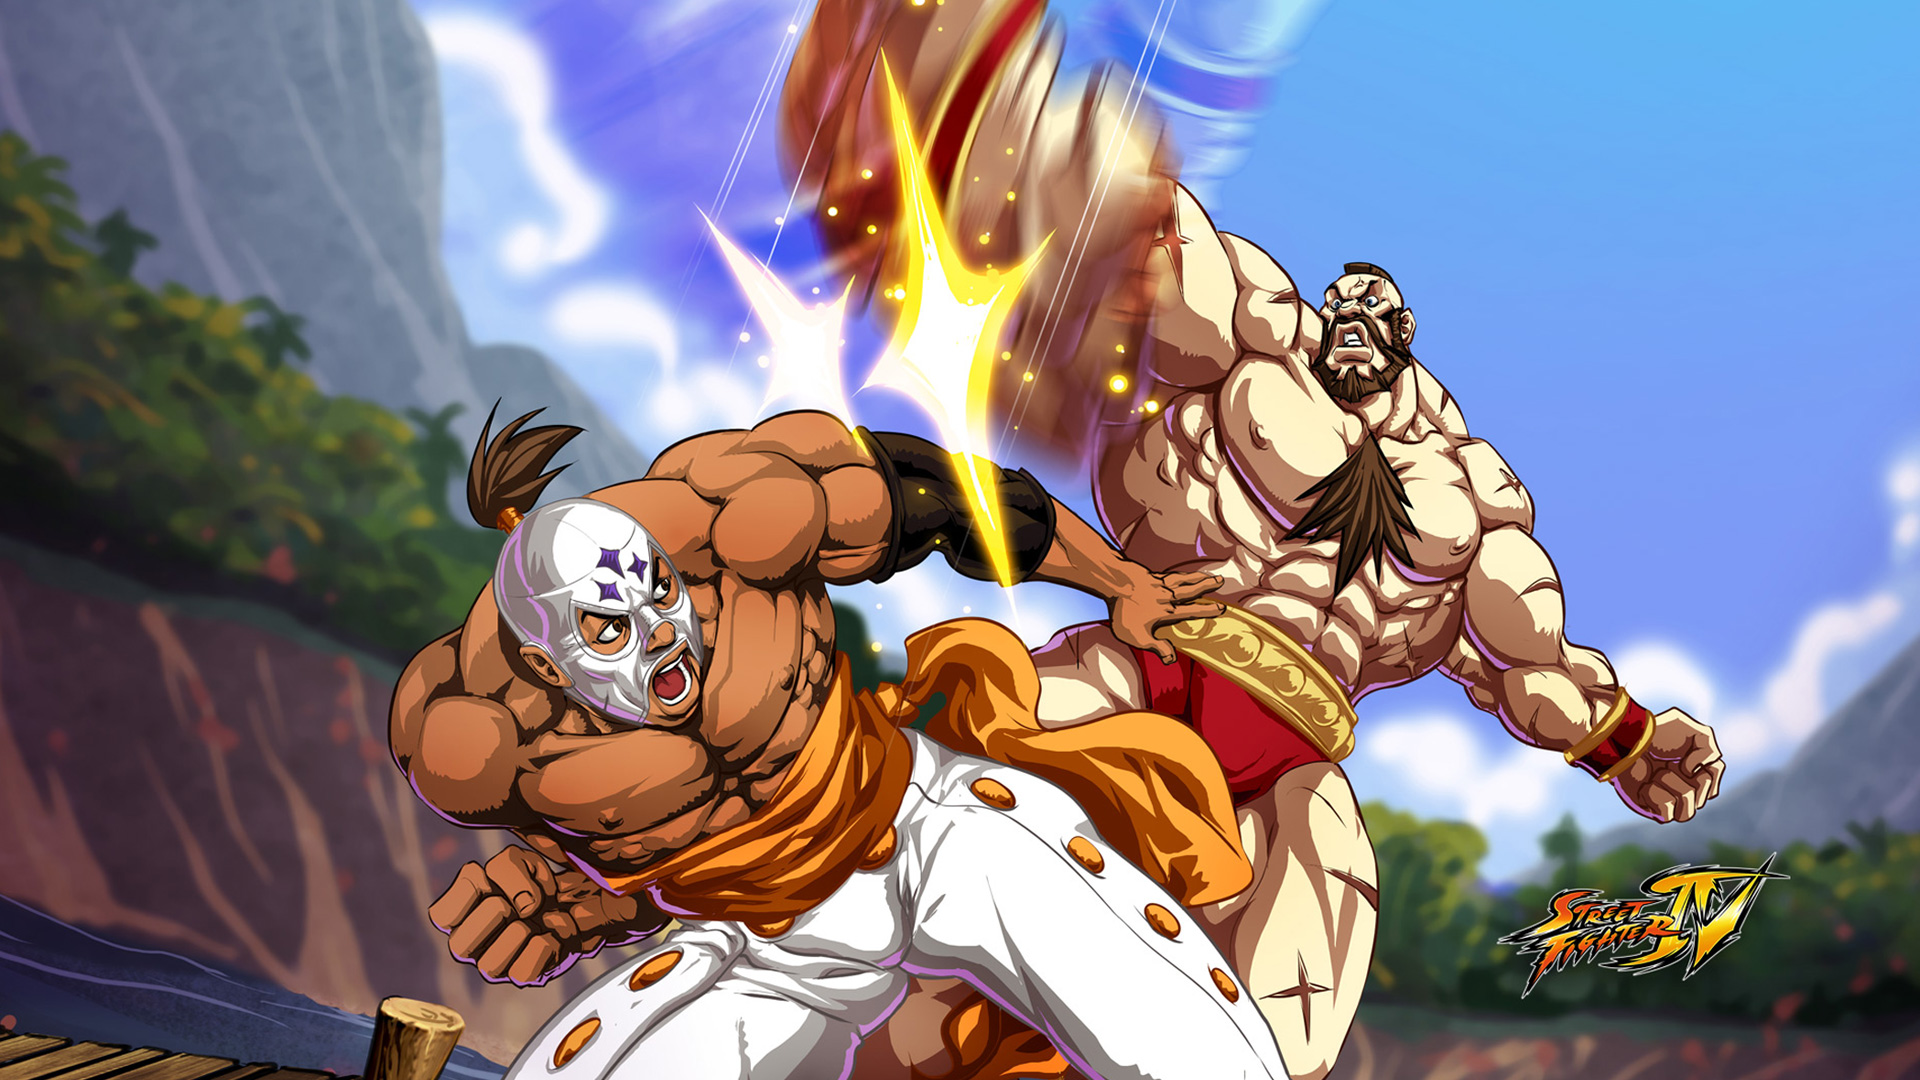 Street Fighter IV Wallpaper in 1920x1080